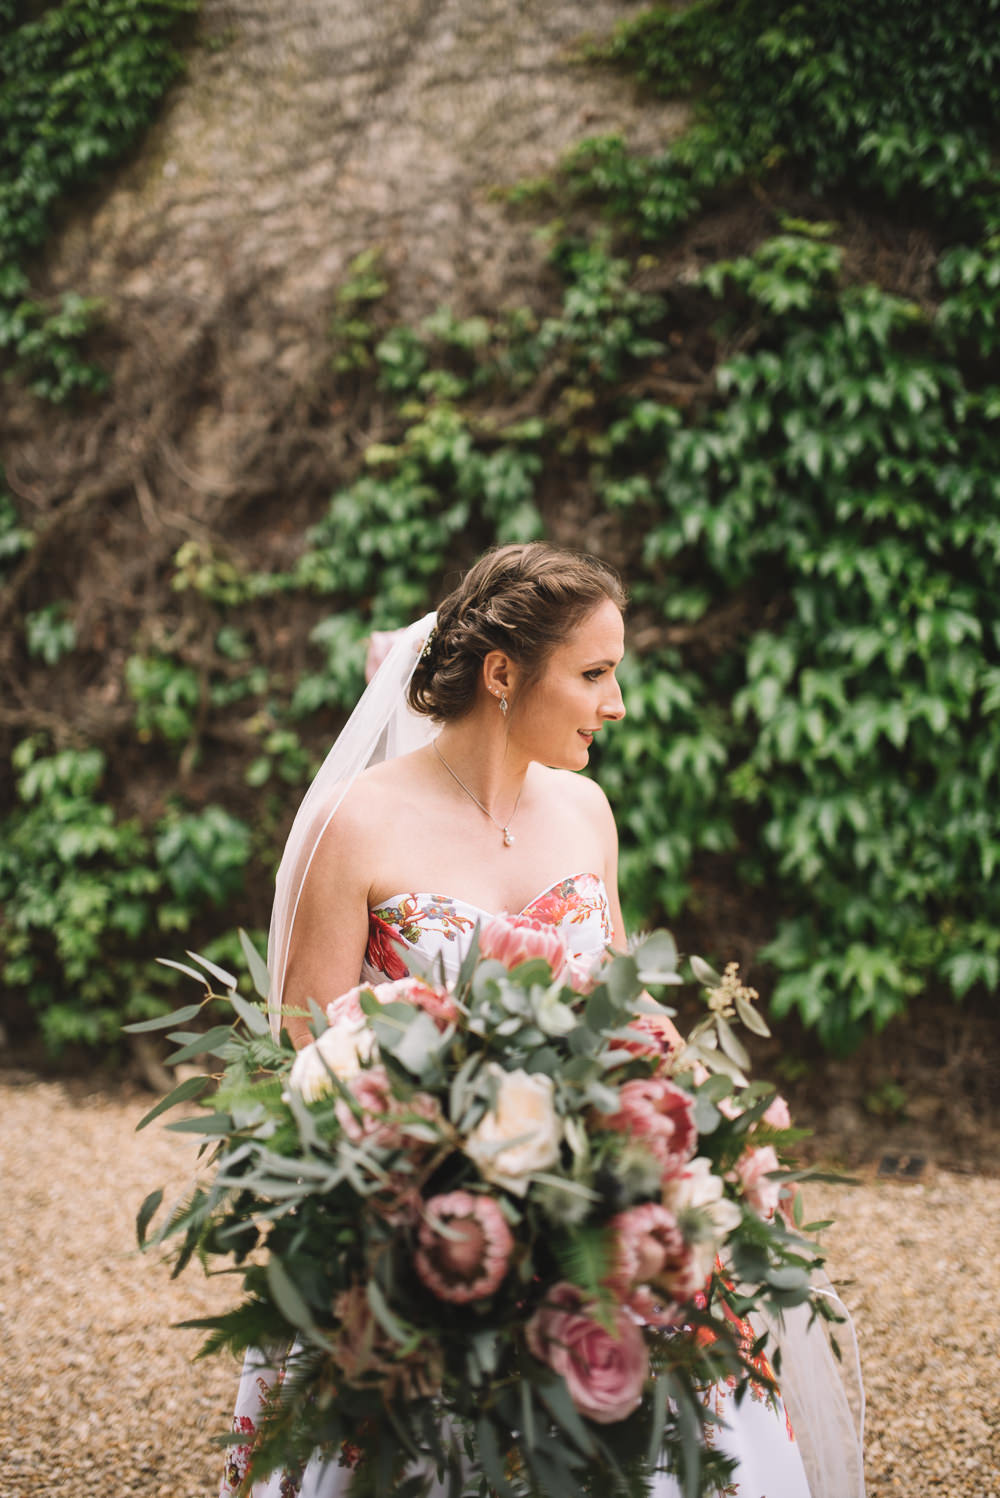 Bride Bridal Bouquet Flowers Greenery Foliage Large Protea Wild Whimsical Natural Irnham Hall Wedding Lucie Watson Photography